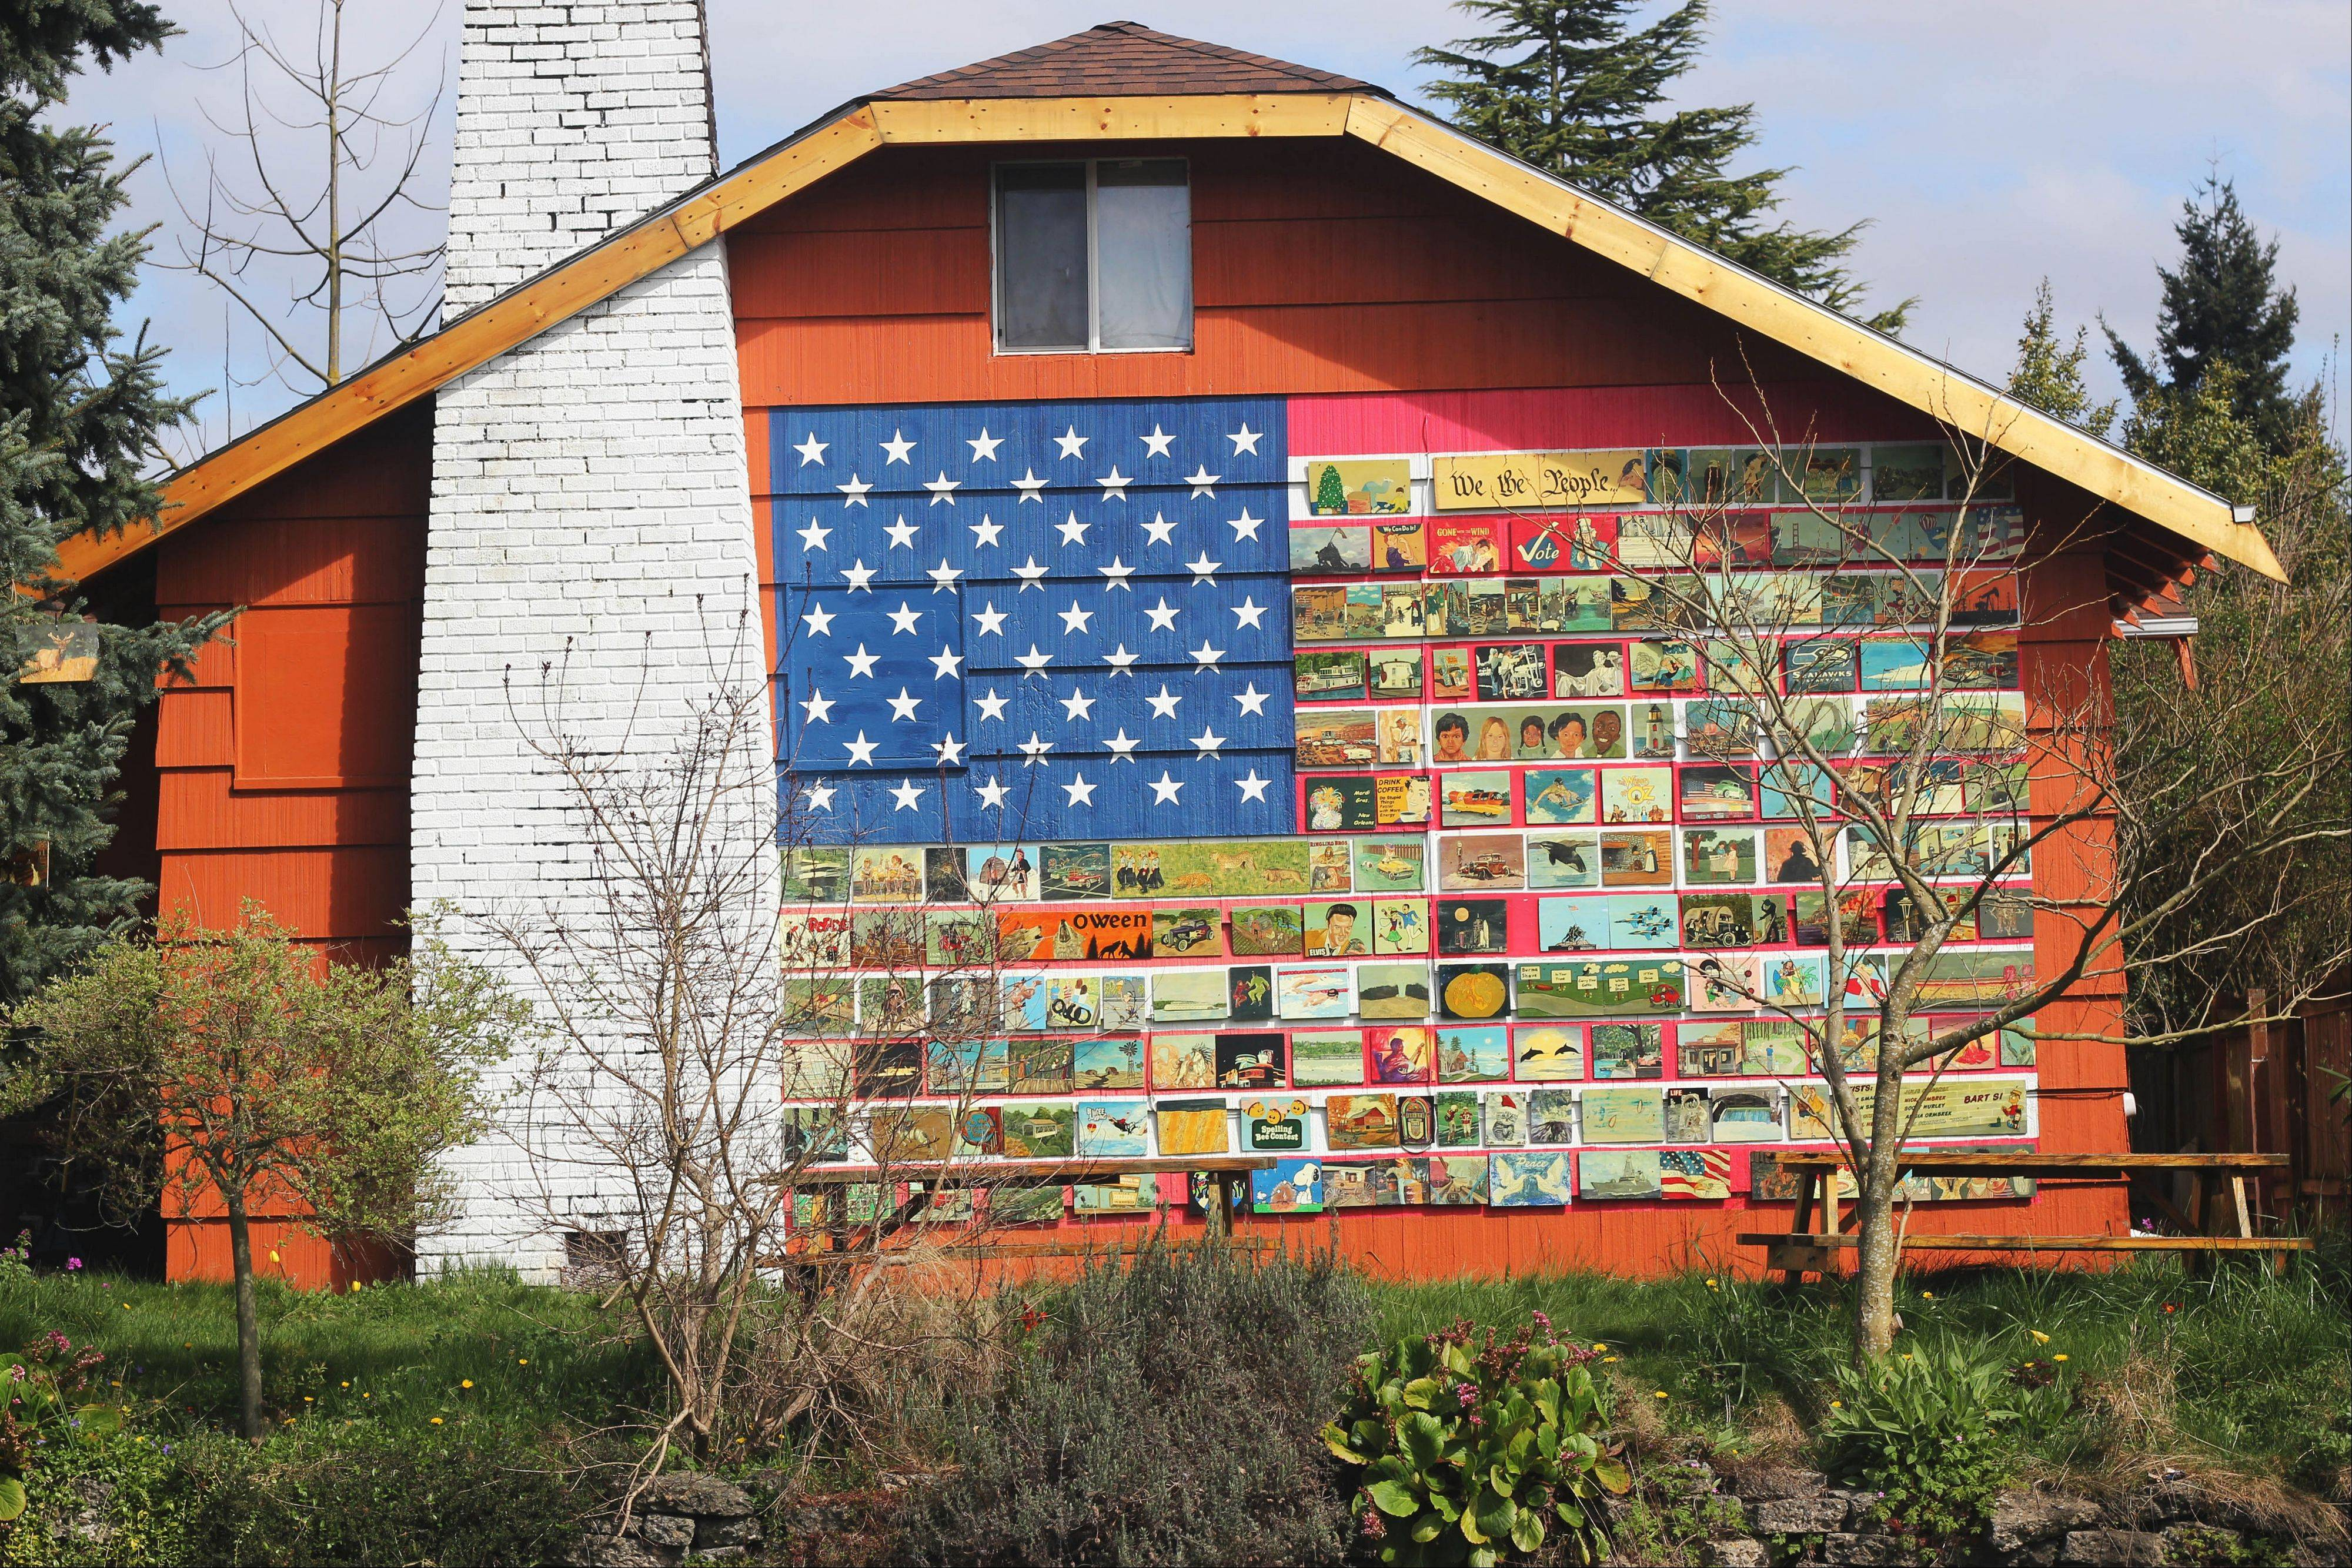 Richard Ormbrek's house in Seattle is decorated with a 20-foot-wide American flag made up of 180 individually painted tiles.